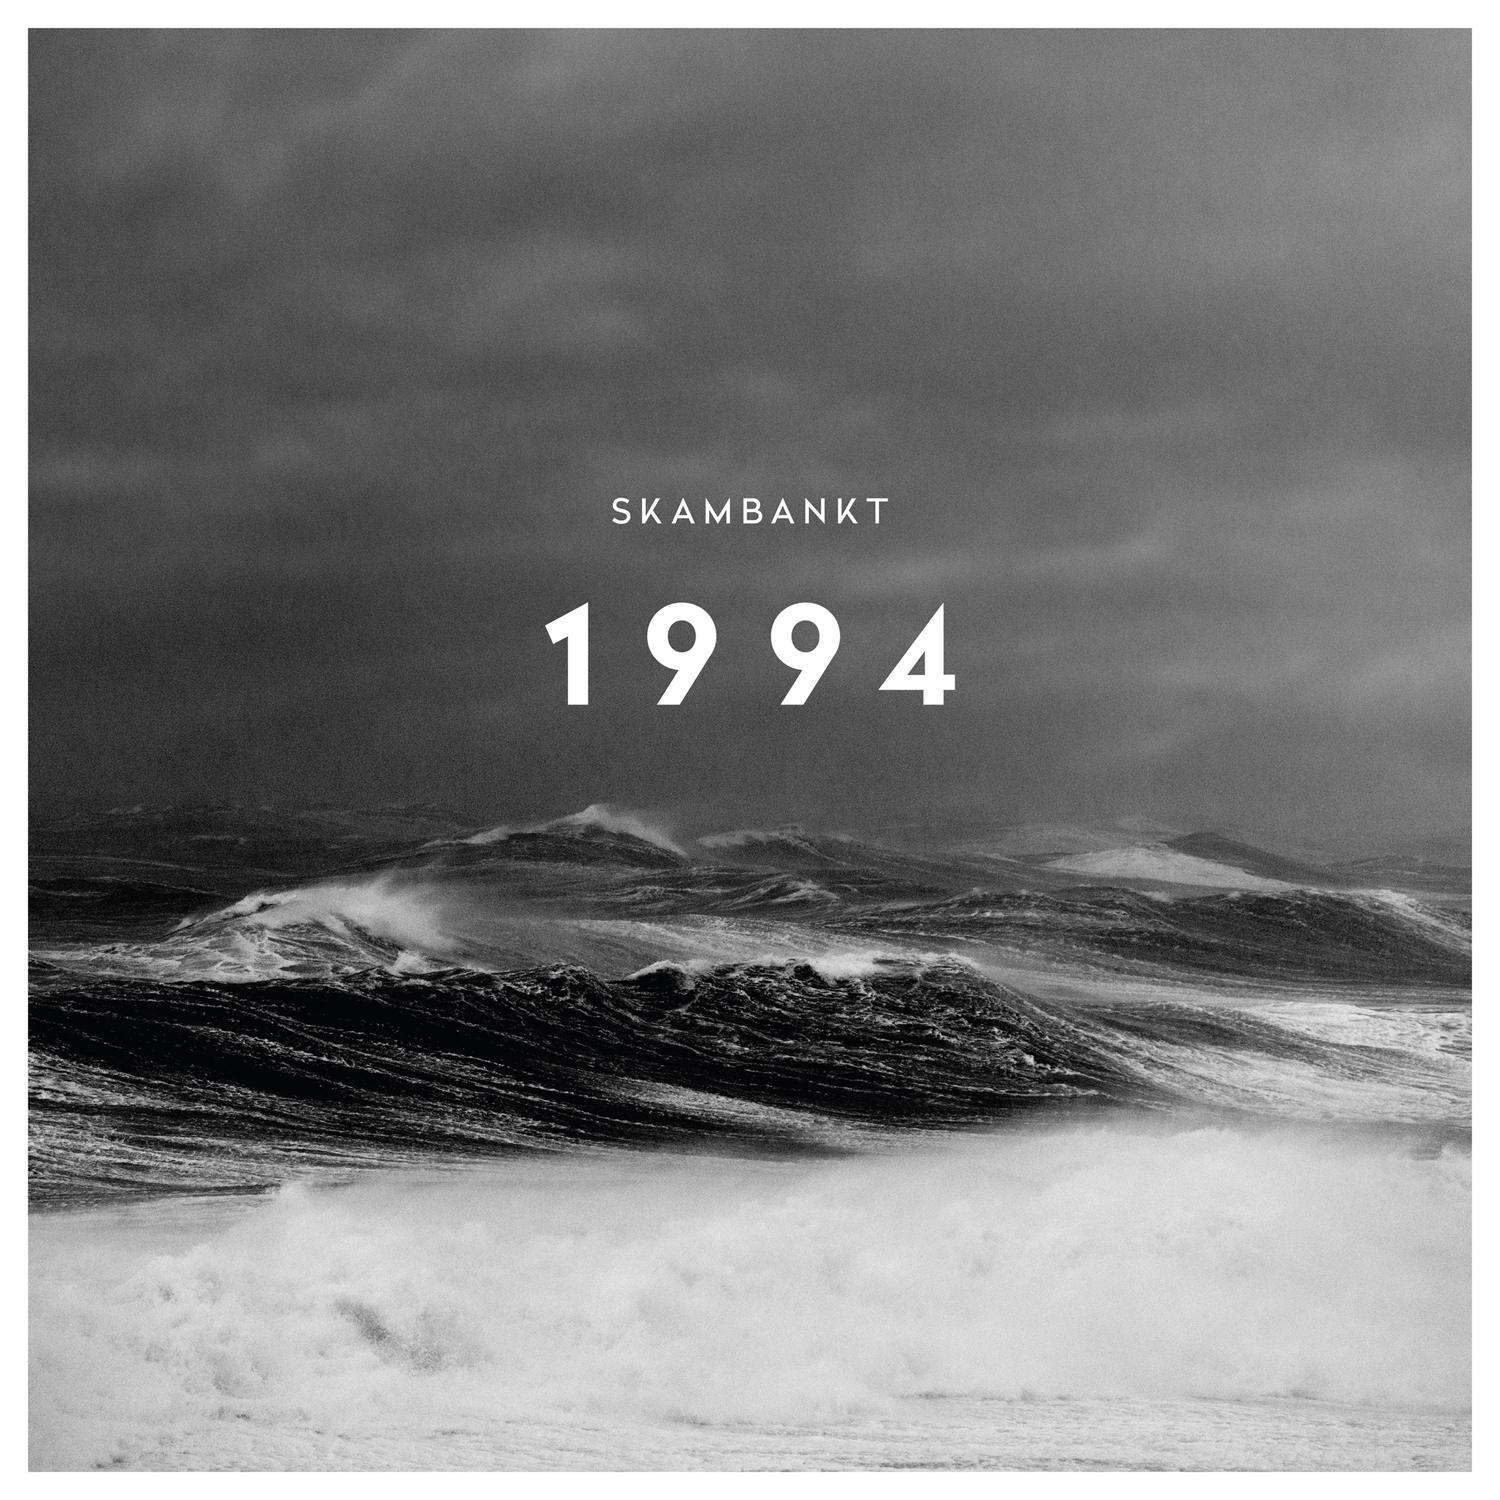 Skambankt – 1994 [LTD LP] (White vinyl)